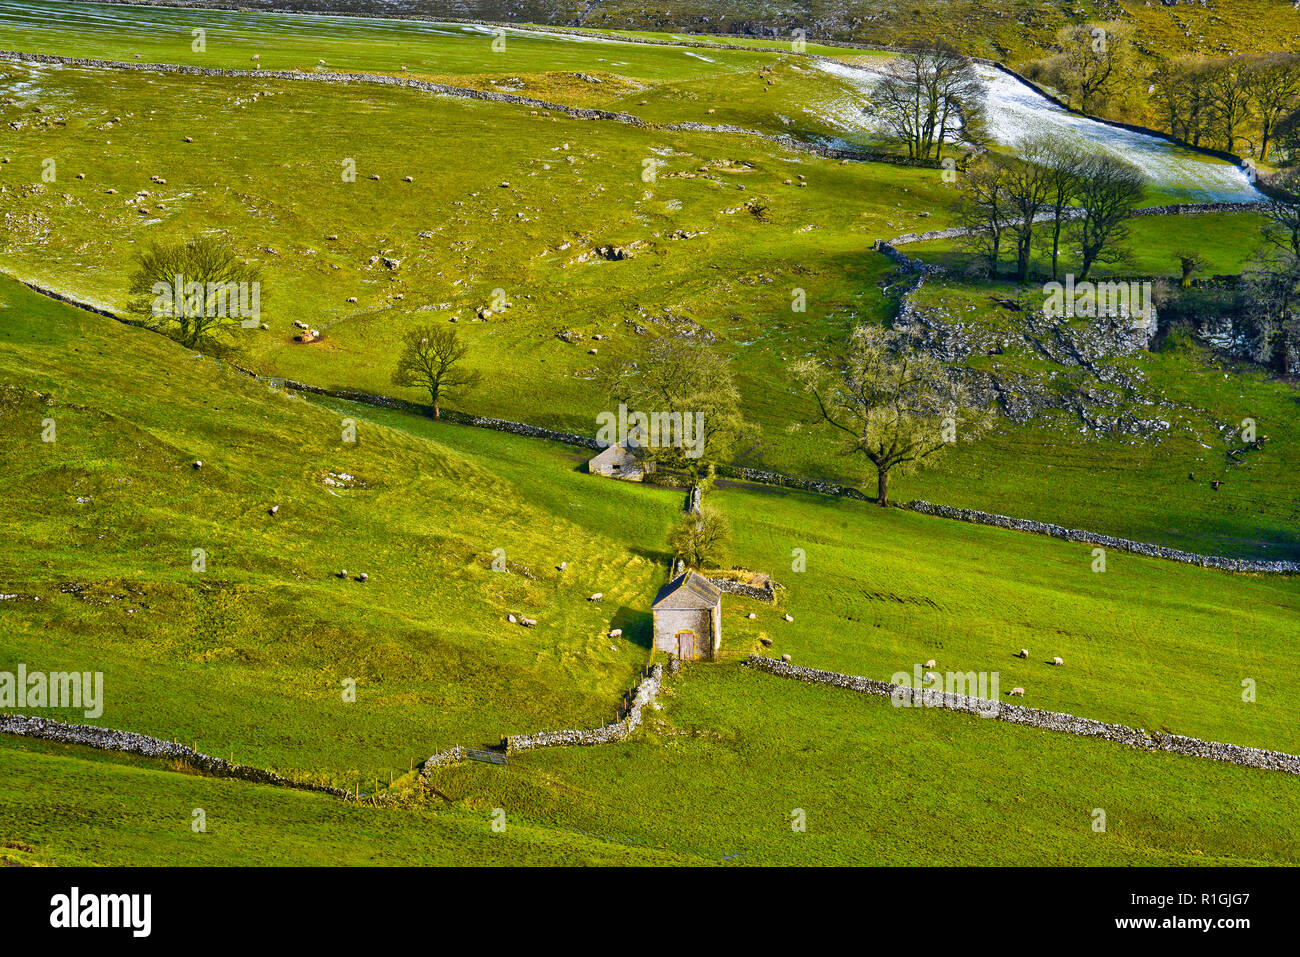 Old field barns near Dowel Dale, in the upper Dove Valley, Peak District, England. - Stock Image